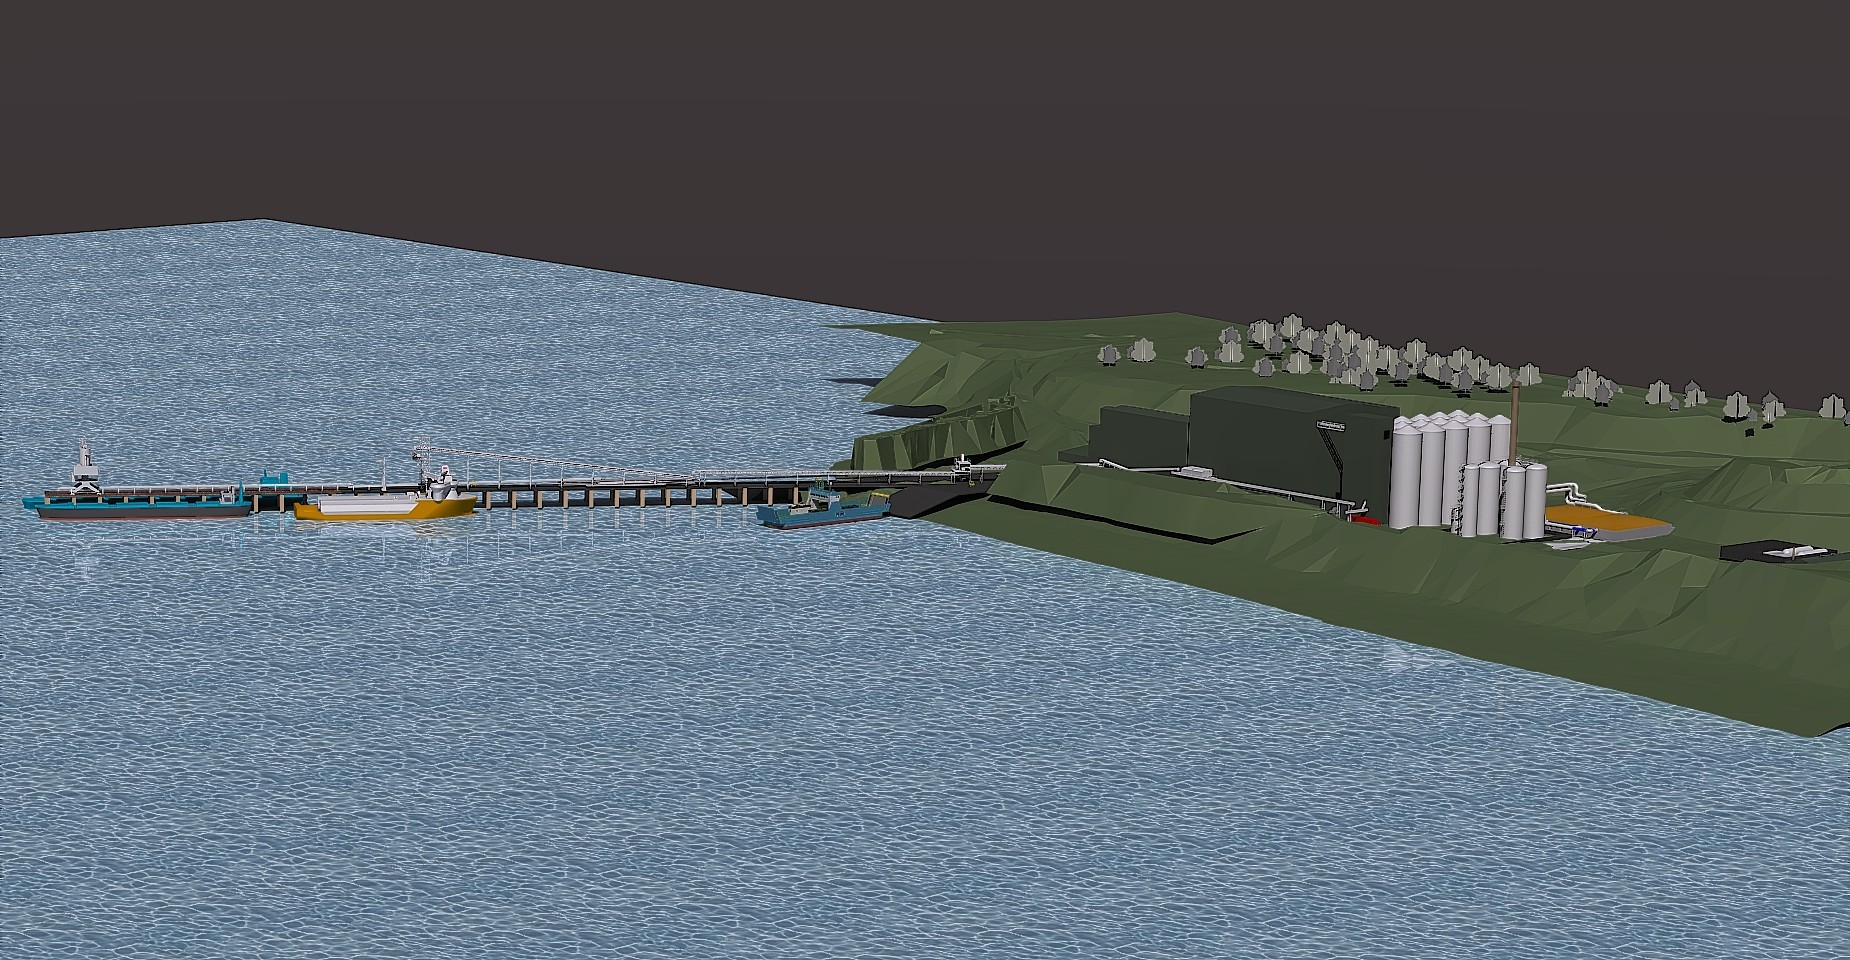 A computer-generated image of how the new fish feed plant at Kyleakin will look